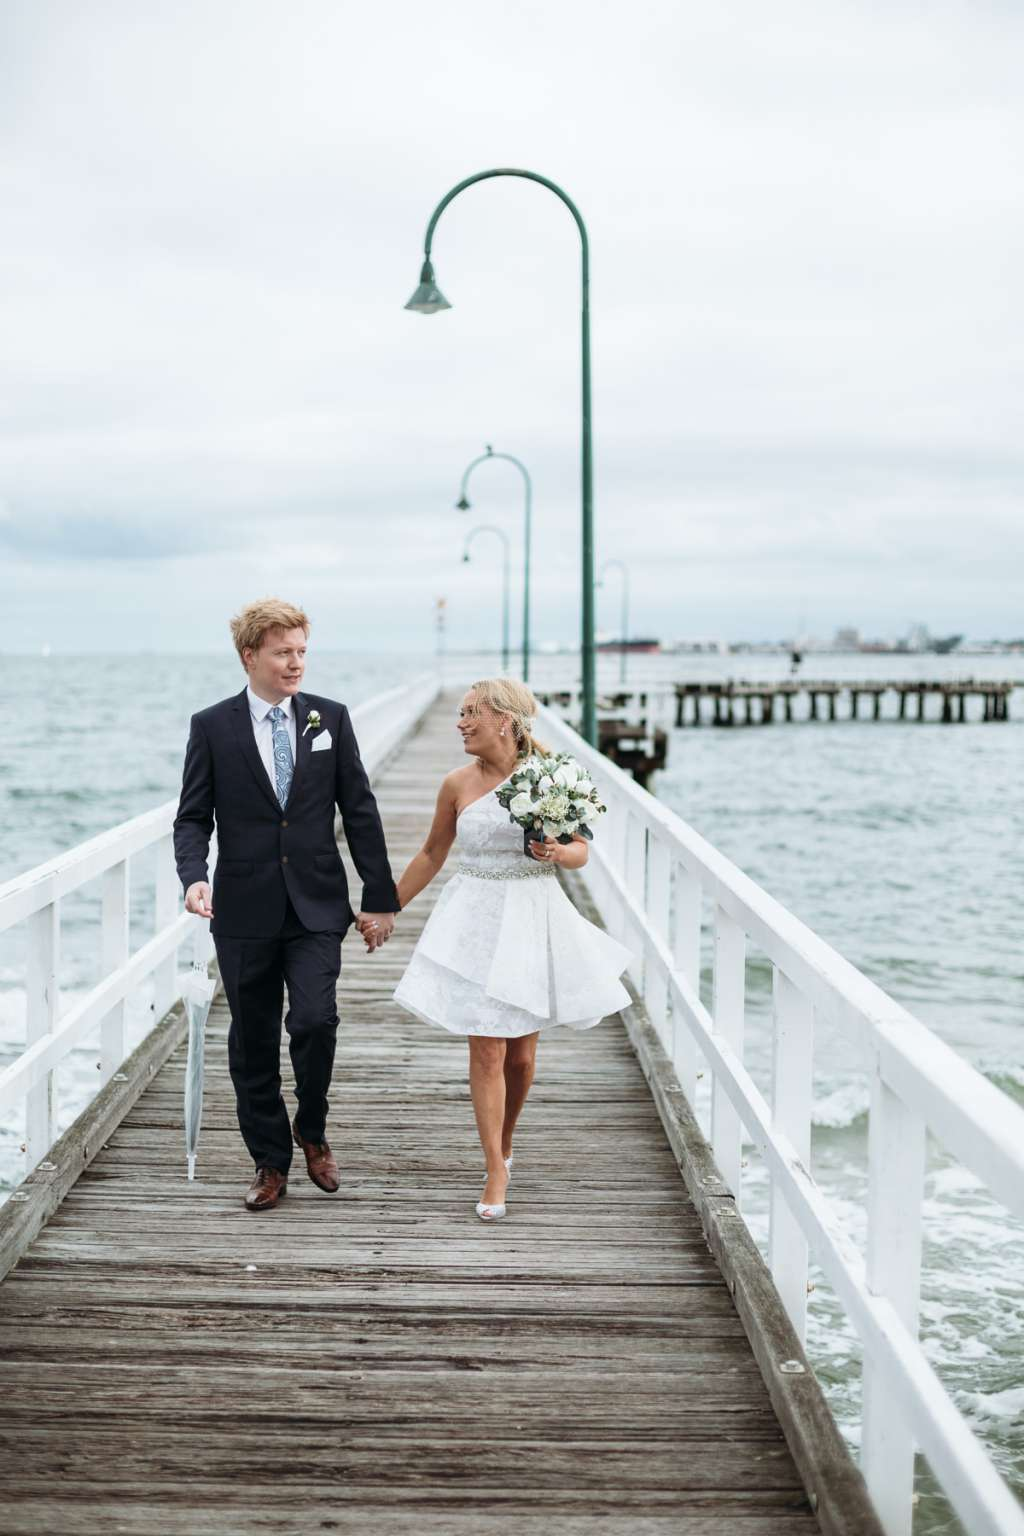 Wedding Photography Melbourne - Jenny & Ben 5543